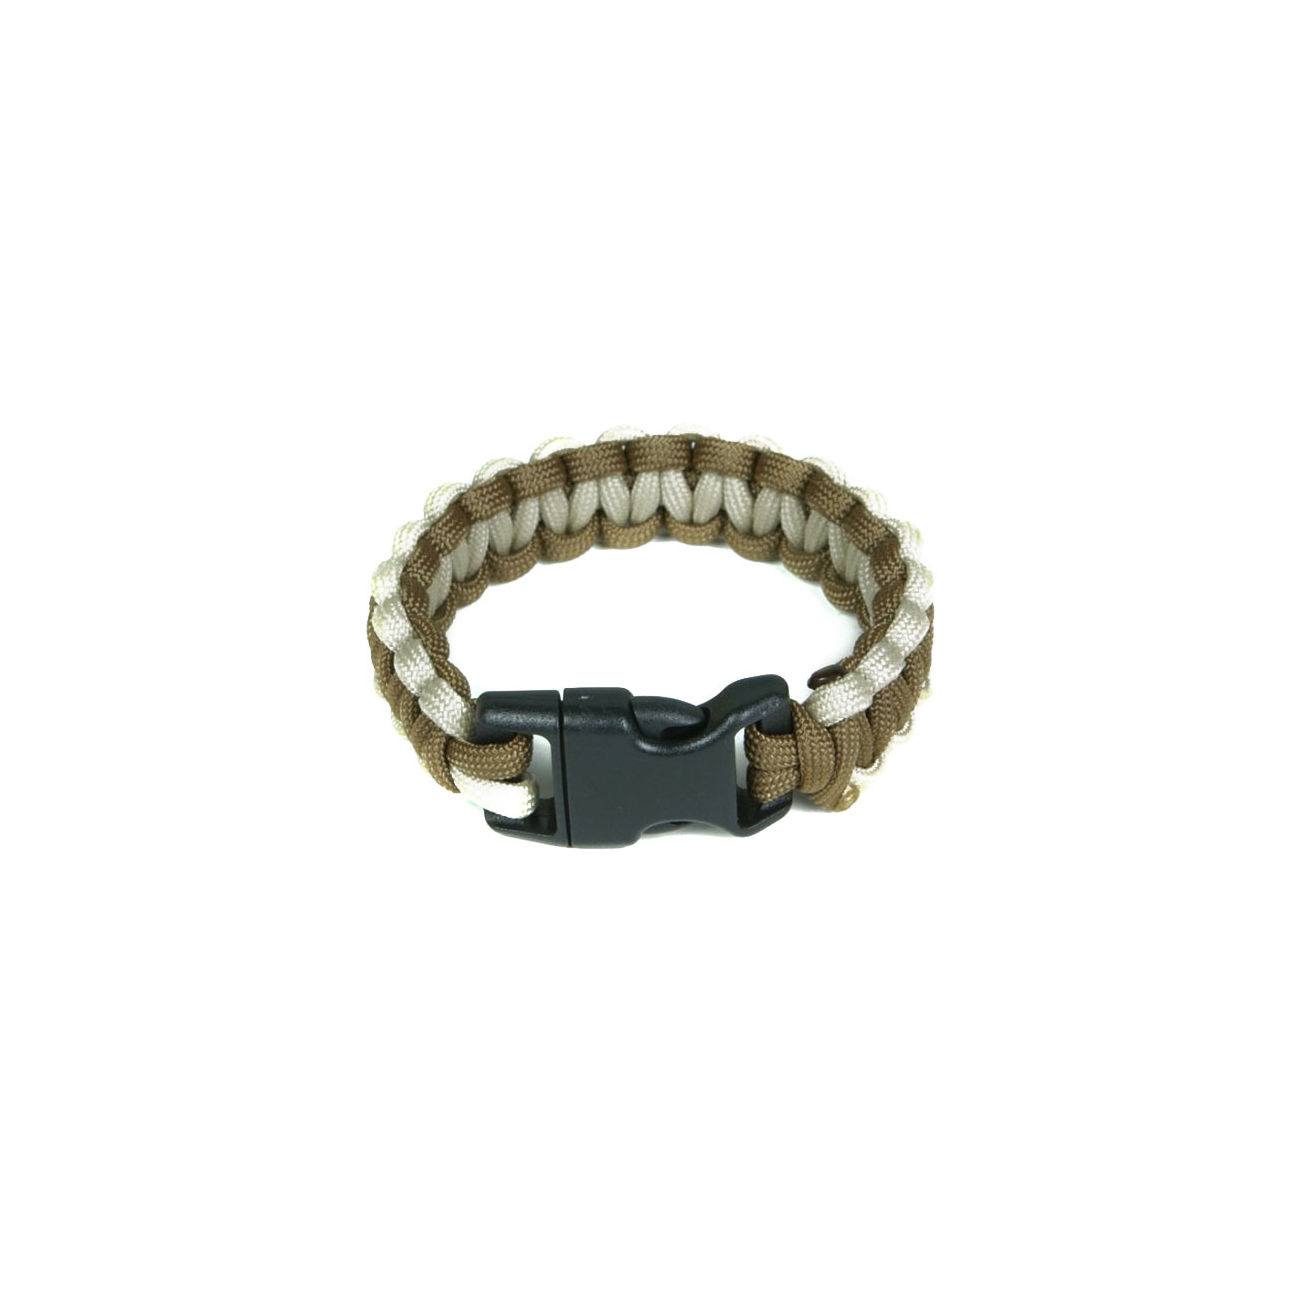 Mil-Spec Cords Cobra Paracord Bracelet coyote / tan 0